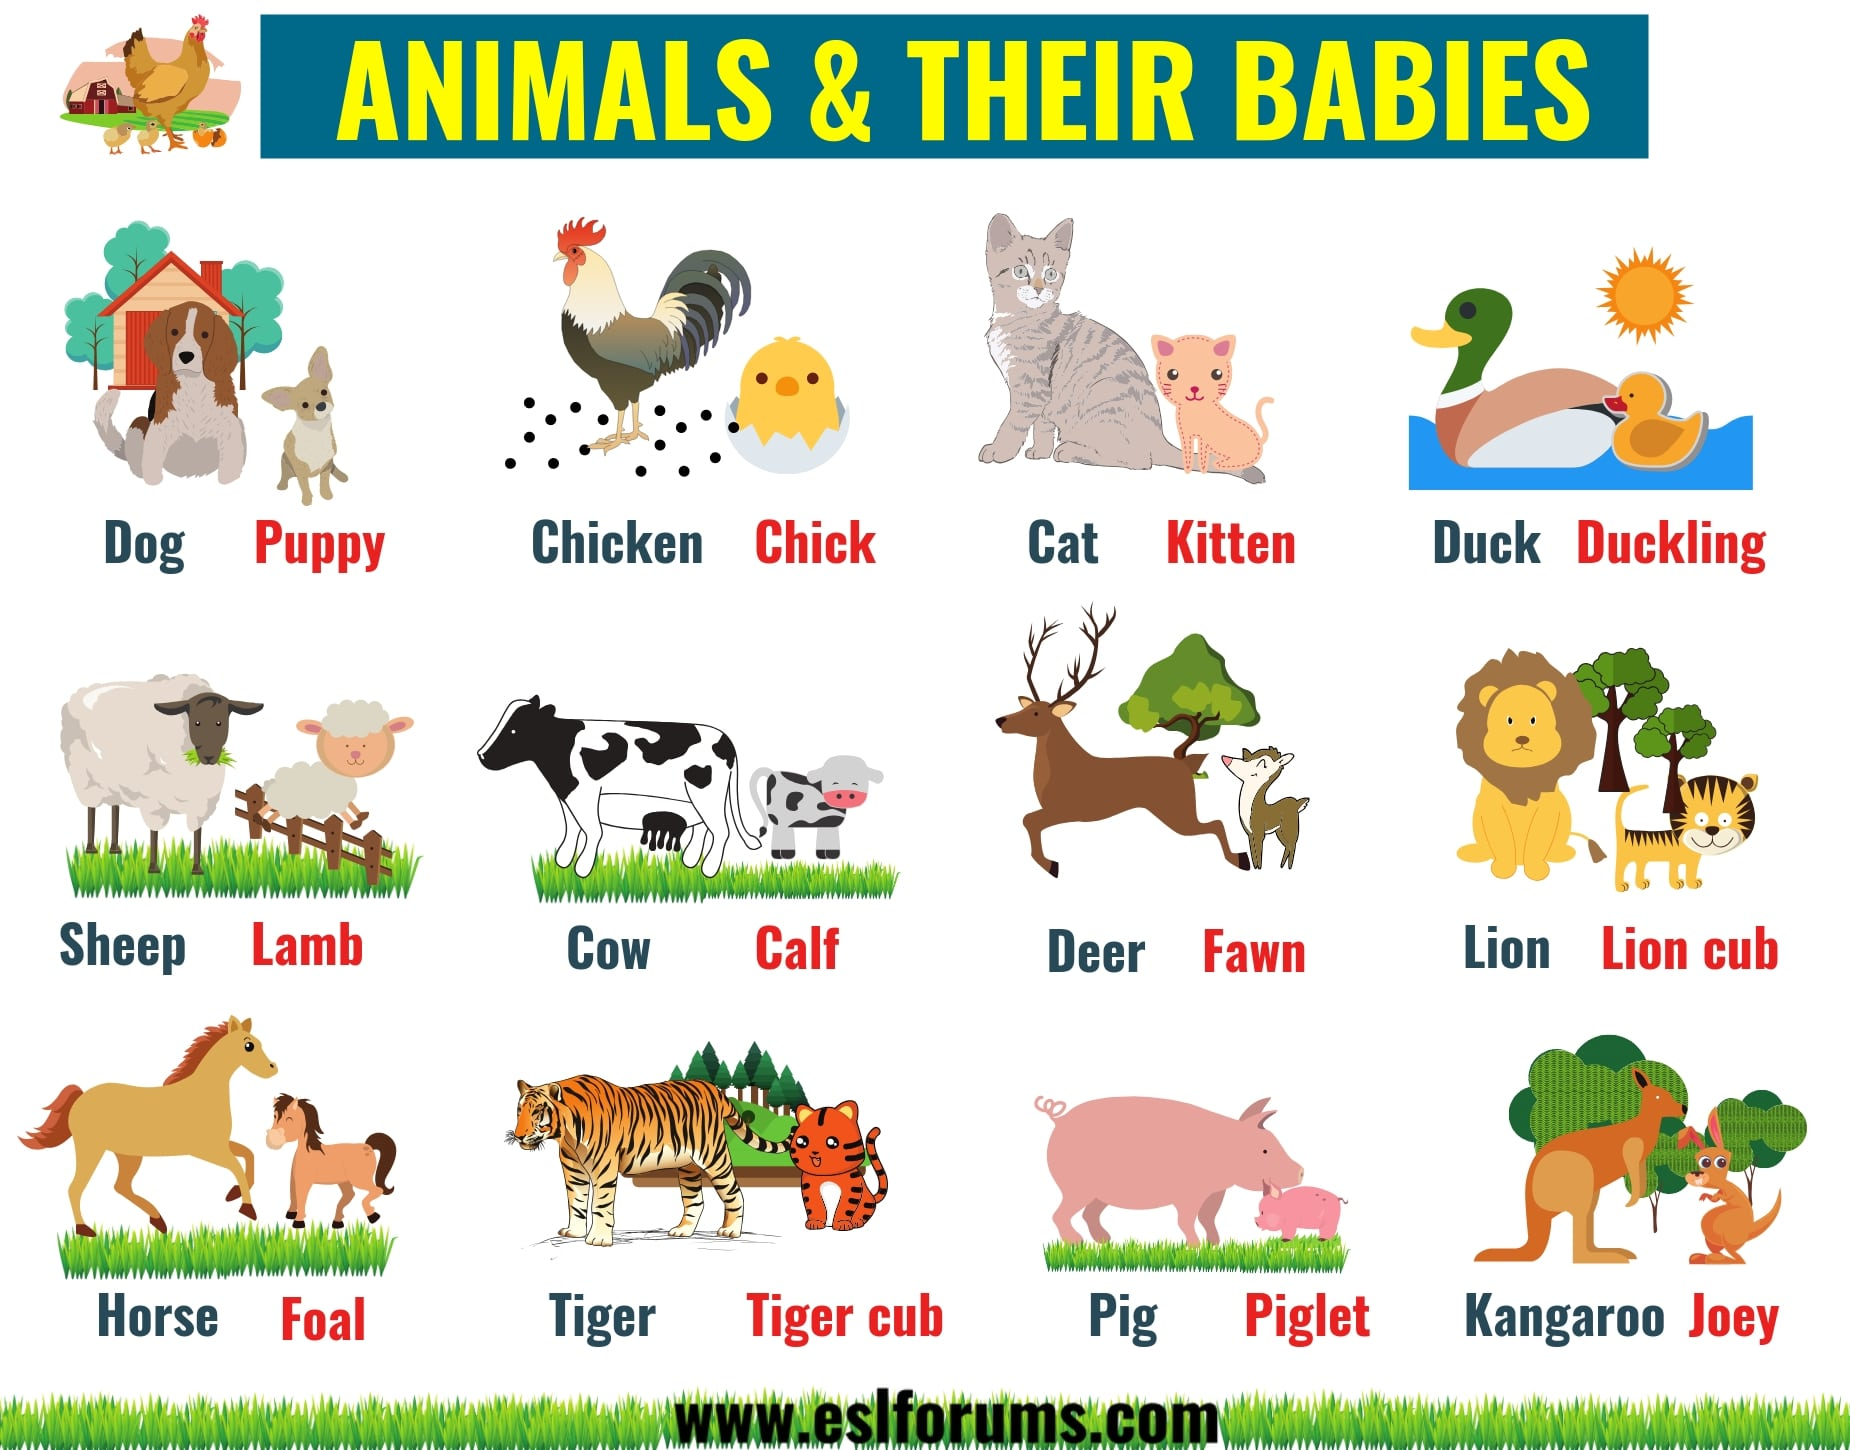 Cute Baby Animals: Learn Popular Animals and Their Babies! 1